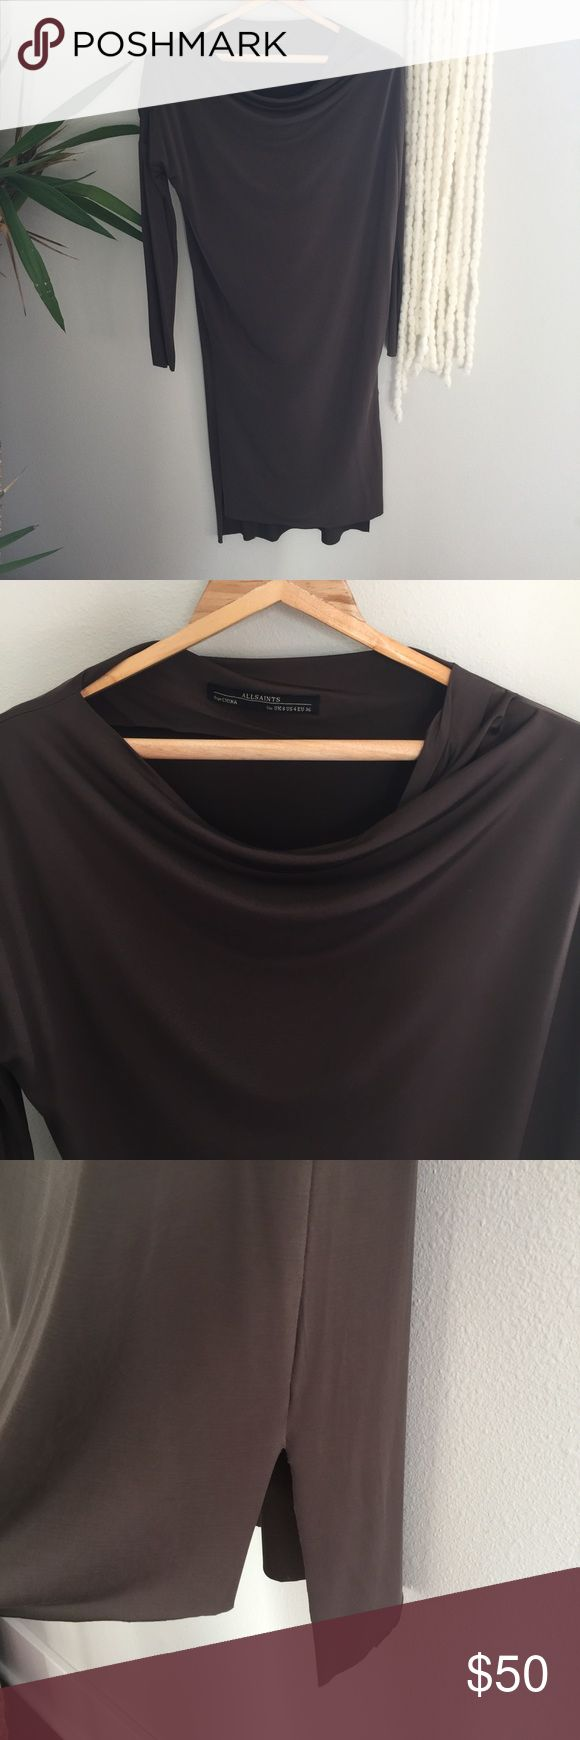 Allsaints dress Allsaints dress US size 4. Dark olive, stretchy elastic fabric, raw ends, boat neck, worn once! Perfect condition. All Saints Dresses Midi